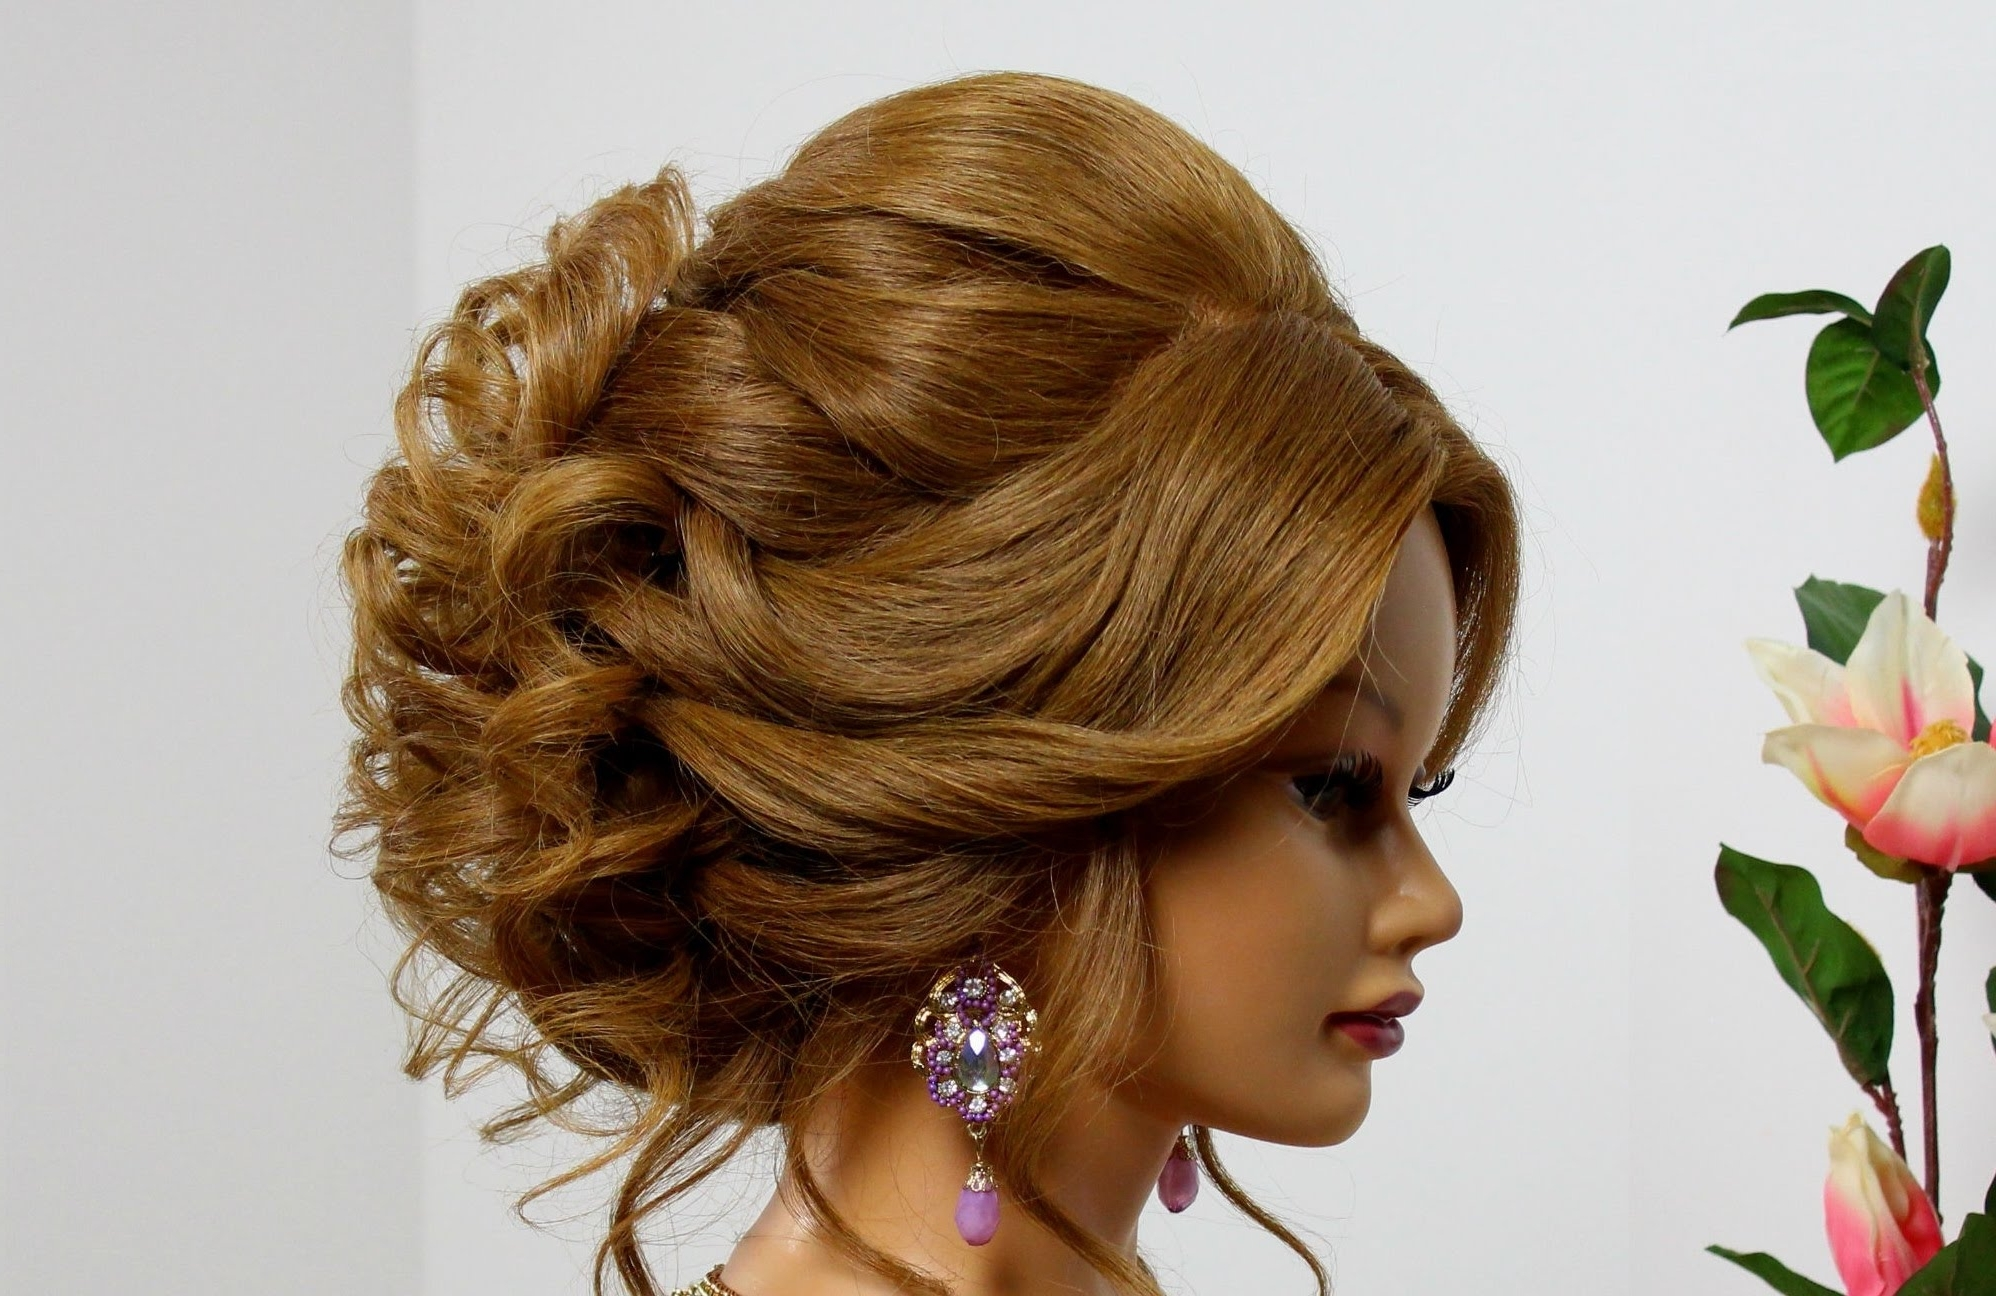 Prom Hairstyles Updos For Medium Hair – Hairstyle For Women & Man Within Medium Hair Prom Updo Hairstyles (View 4 of 15)